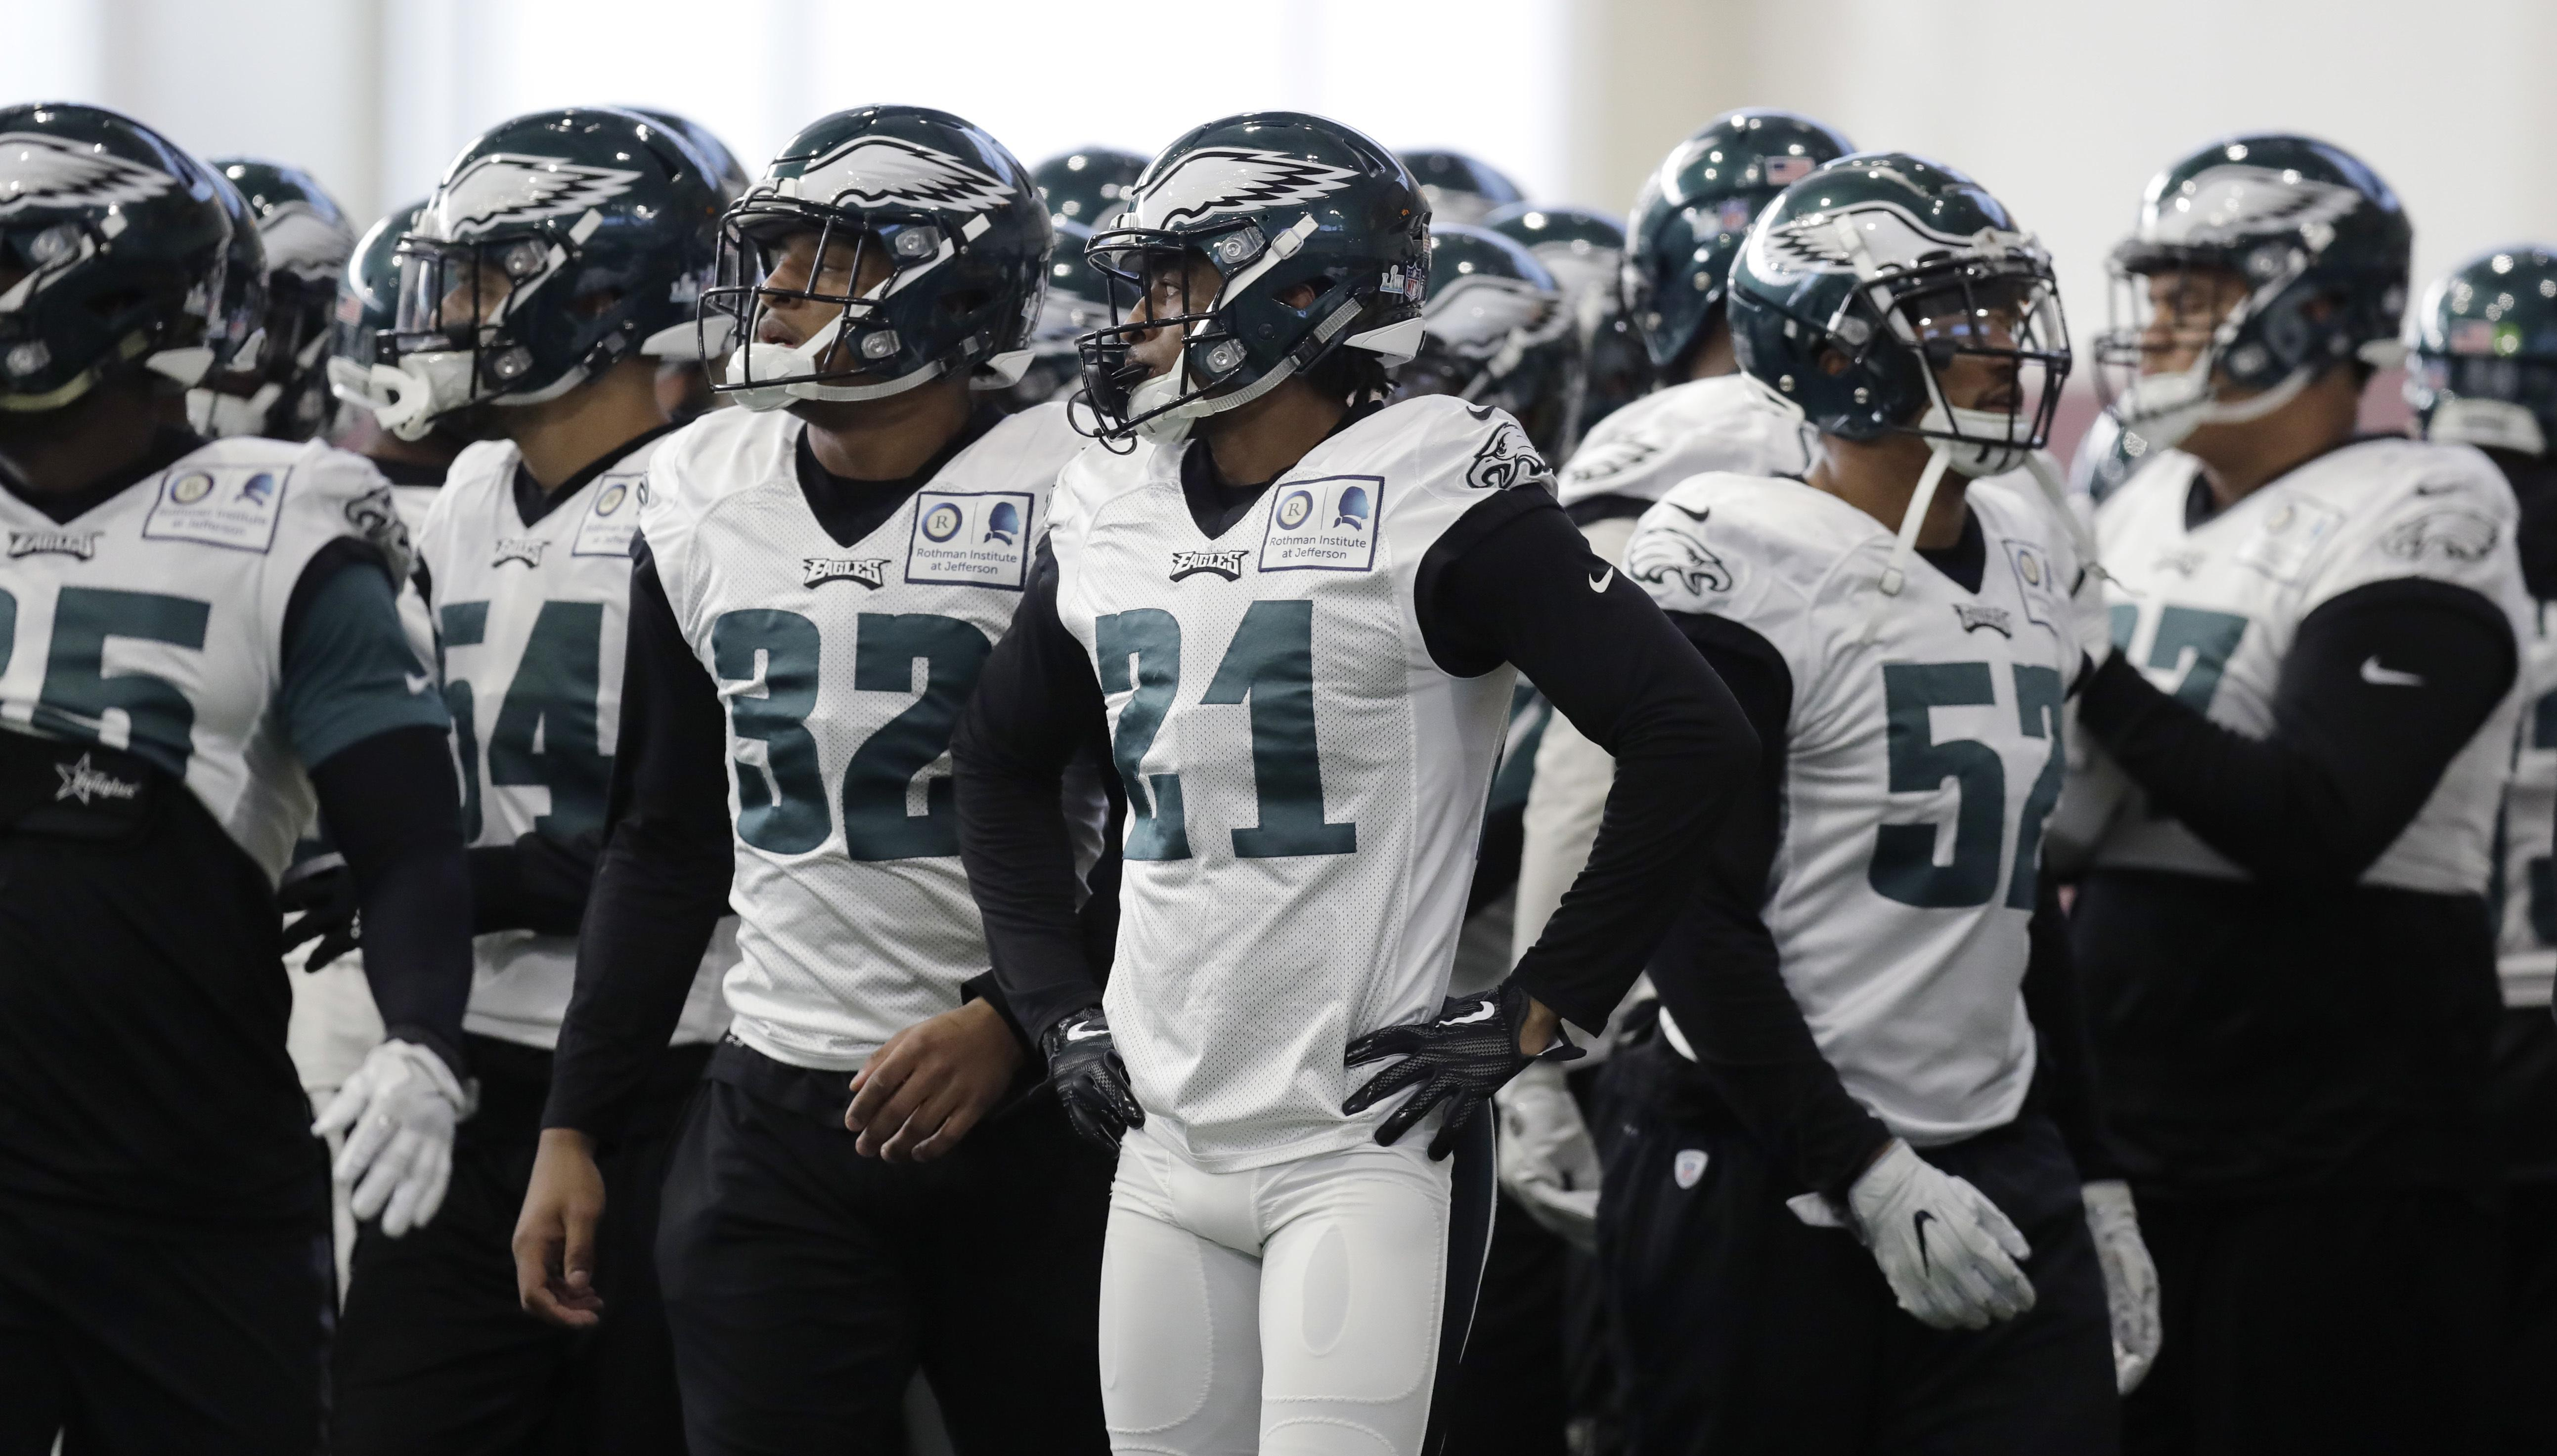 Philadelphia Eagles will be the underdogs when they face the New England Patriots in the Super Bowl